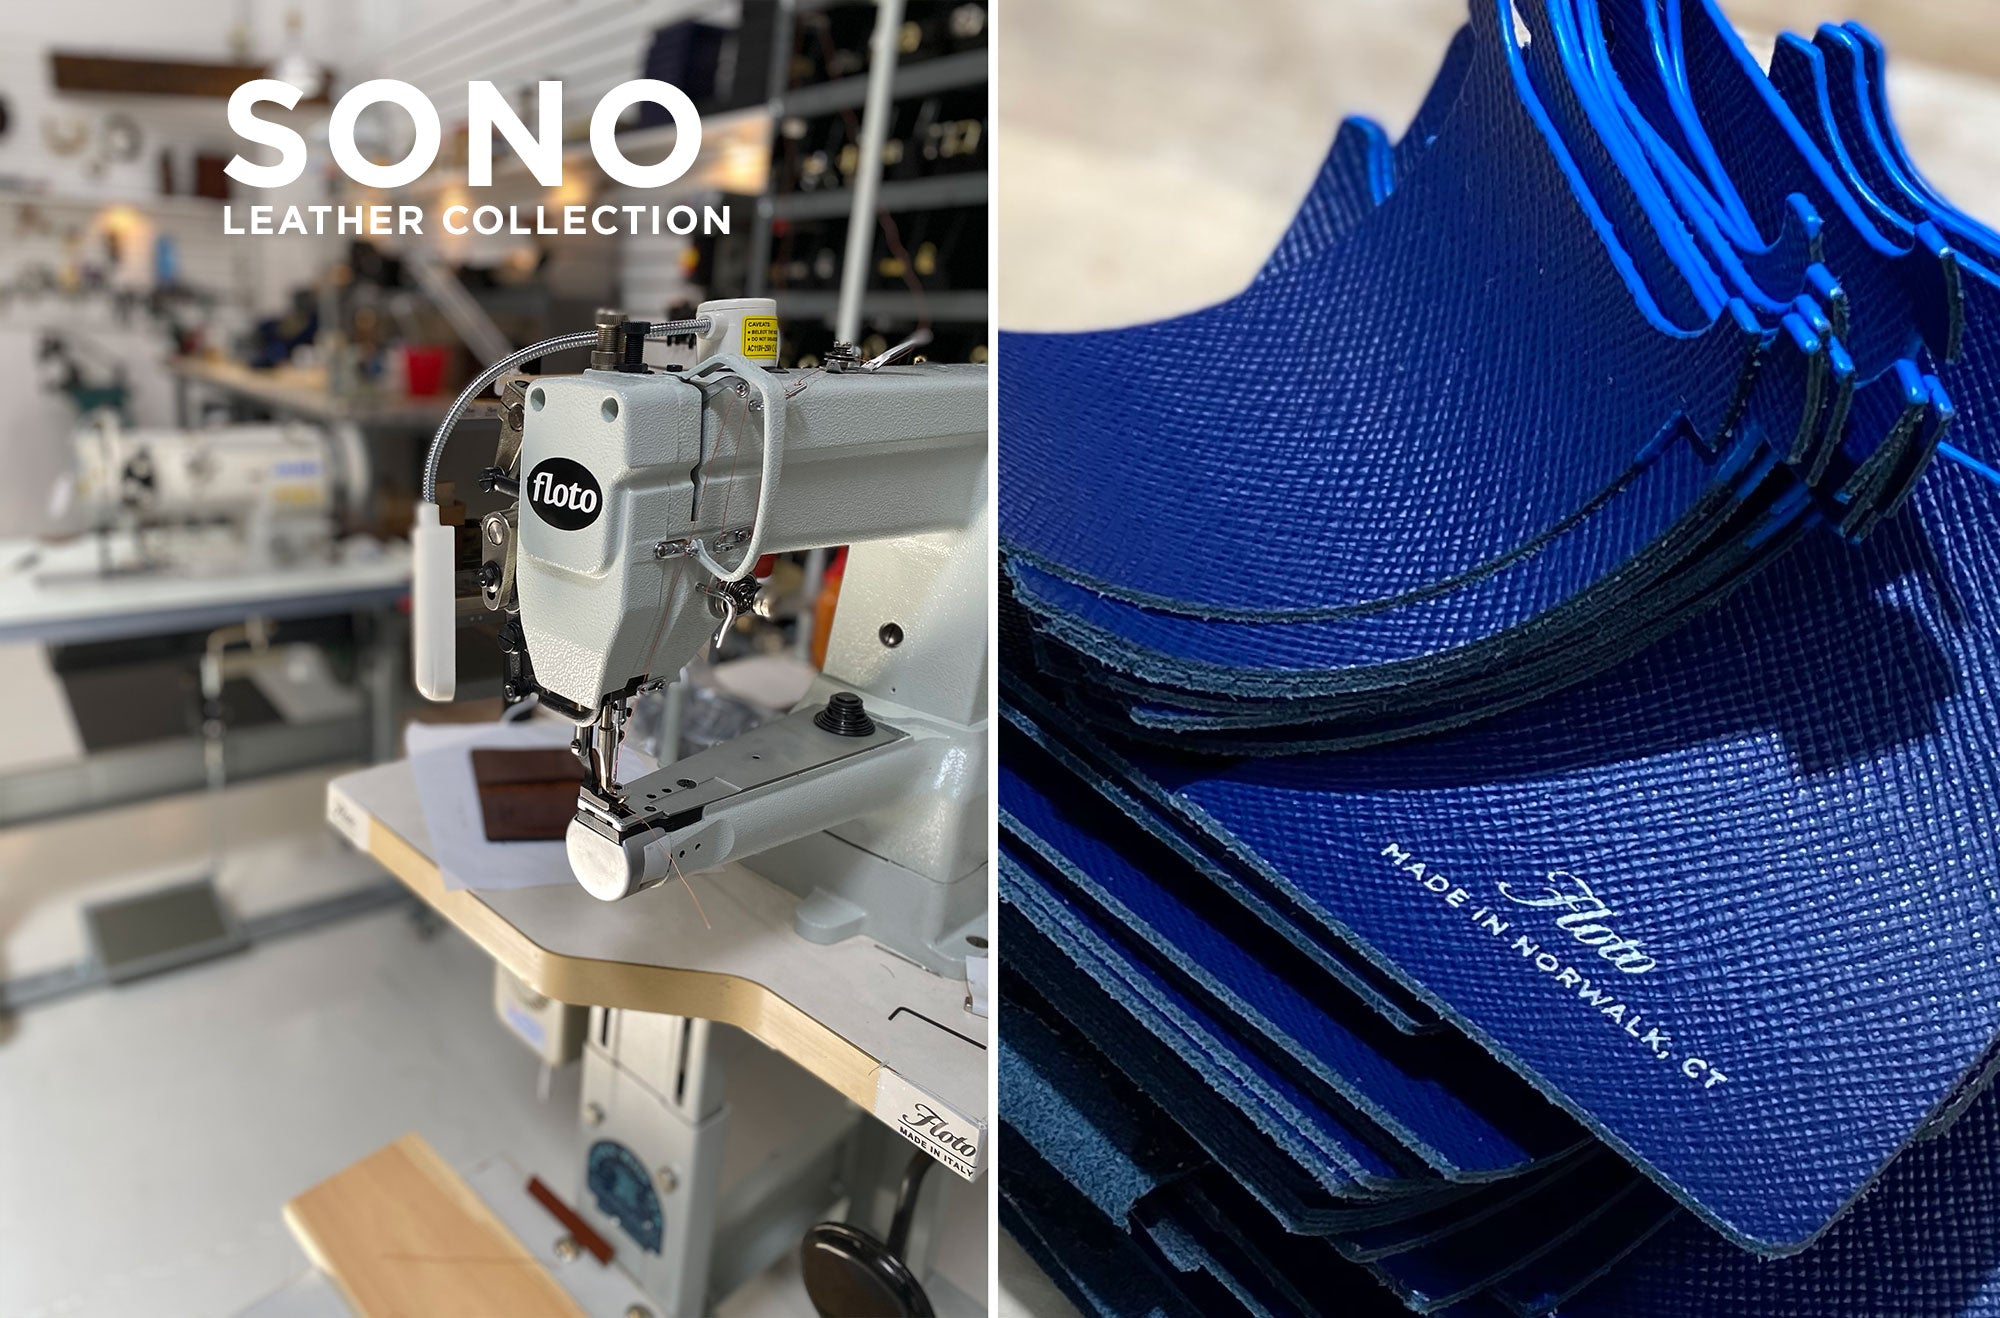 Floto Sono Leather Collection is made in Norwalk, CT - U.S.A.